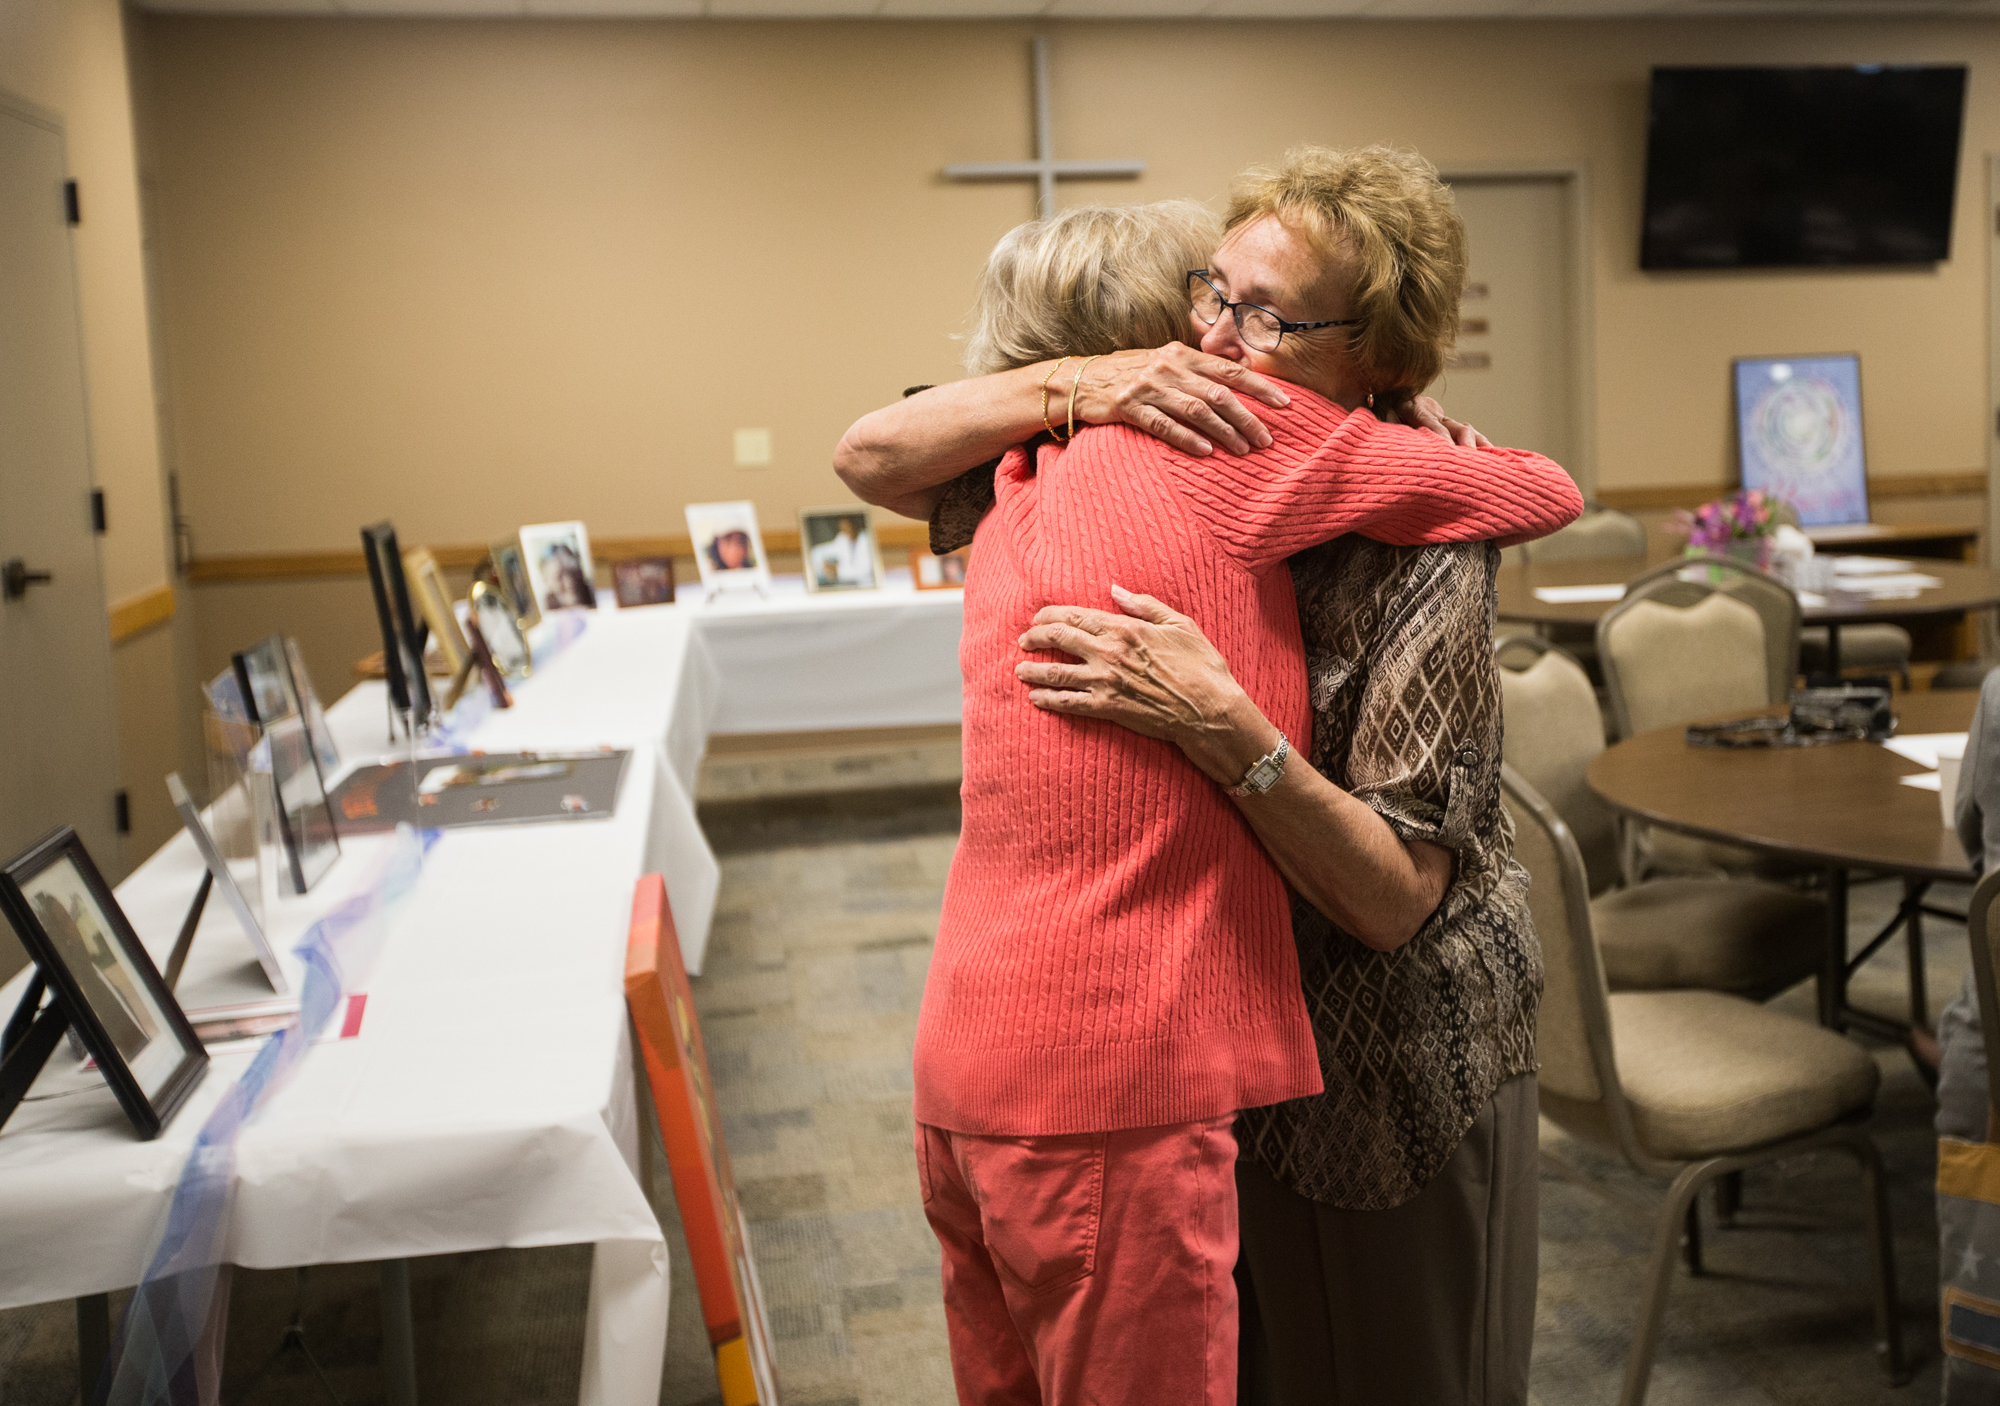 Cathy Schocker of Rockford, left, and retired Winnebago County Coroner Sue Fiduccia hug before the 13th annual Carol McFeggan Homicide Victim Memorial Service on Wednesday, June 20, 2018, at Riverside Community Church in Machesney Park. [SCOTT P. YATES/RRSTAR.COM STAFF]